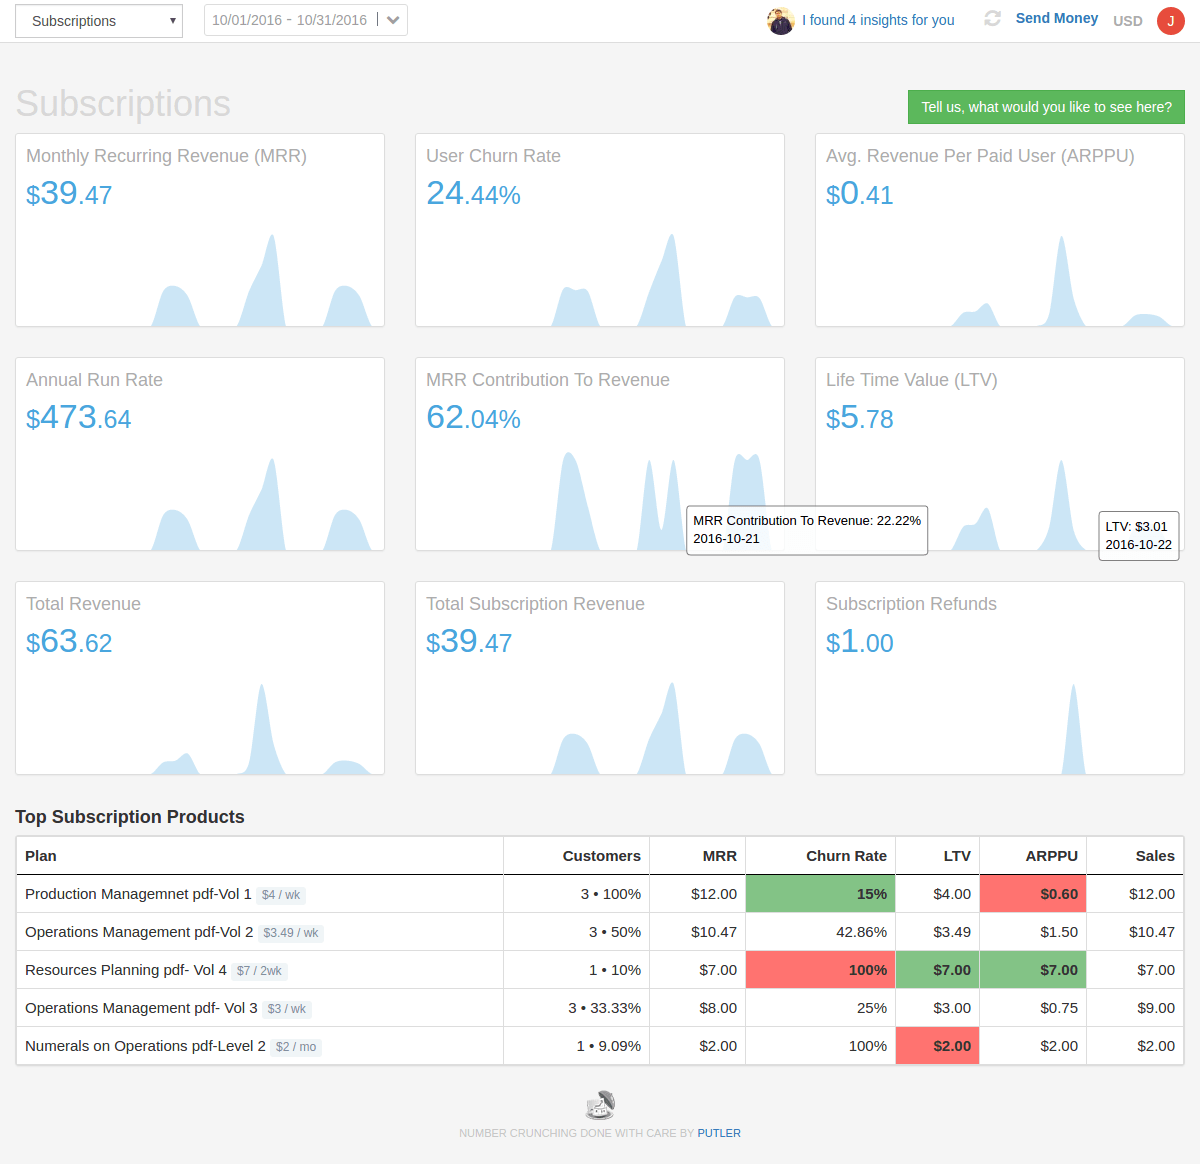 analytics-subscriptions